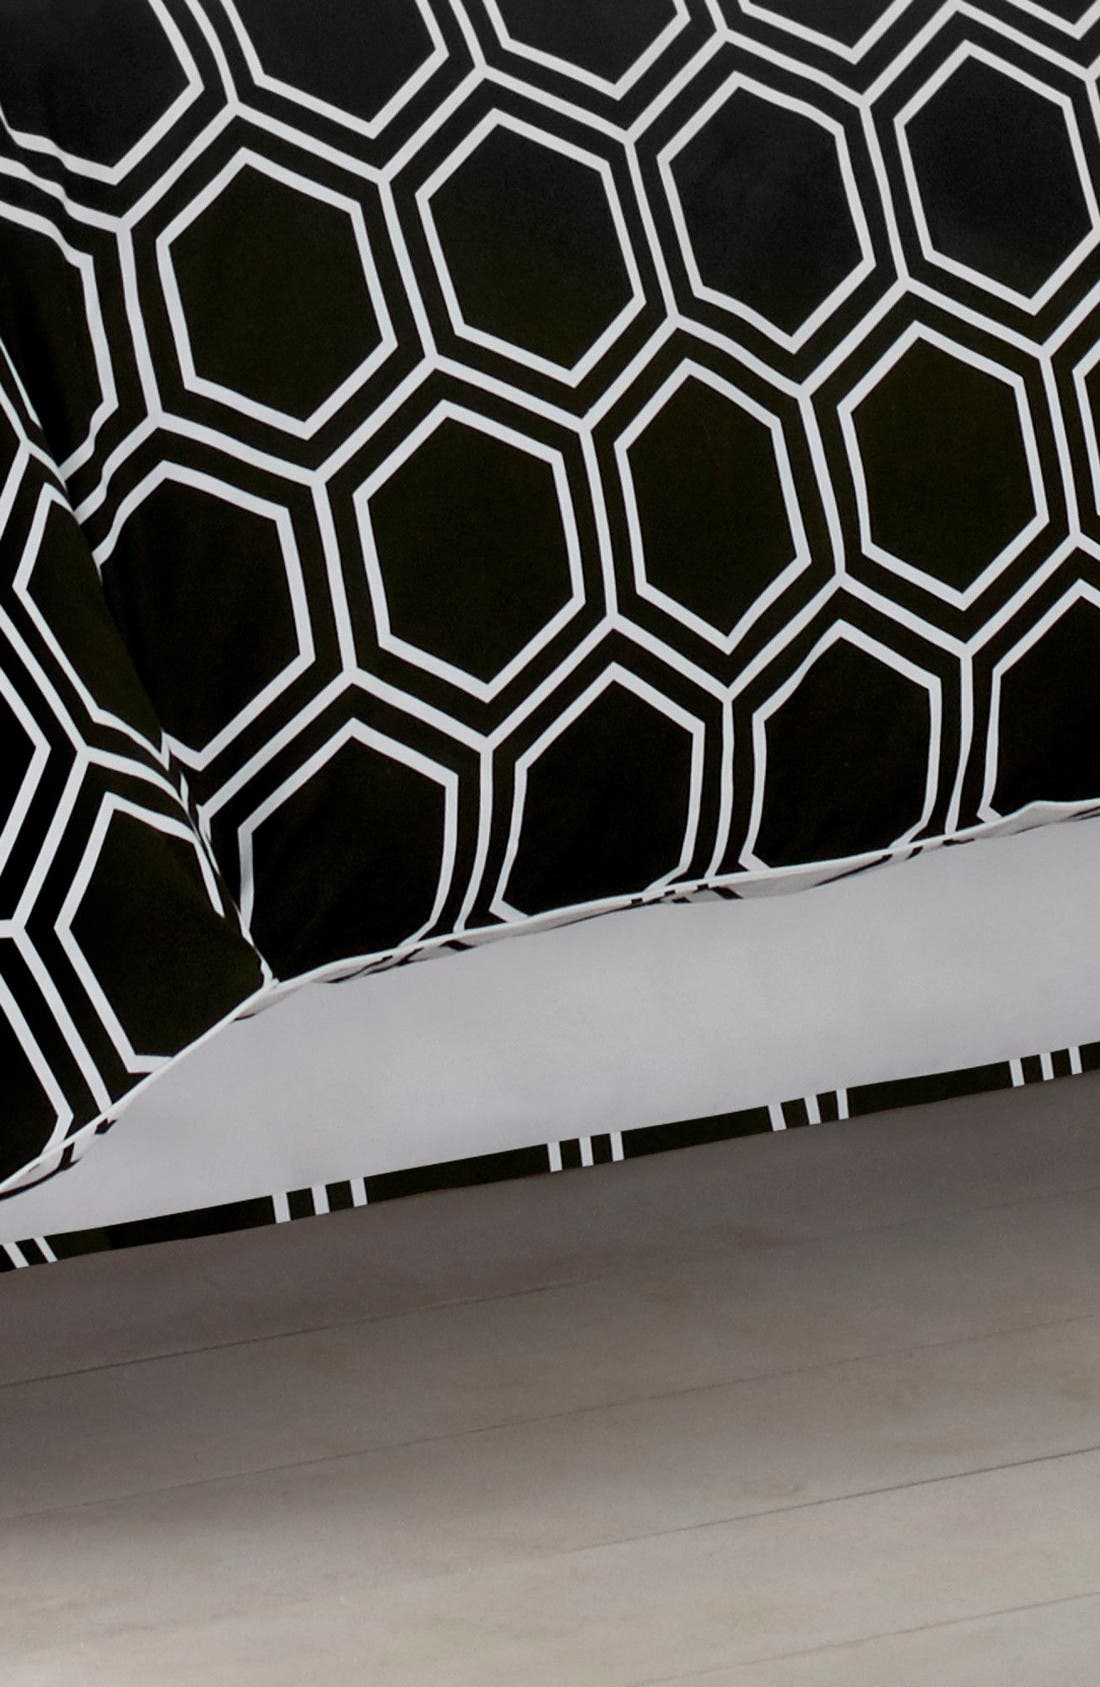 Alternate Image 1 Selected - Jill Rosenwald Blackpoint Hex Bed Skirt